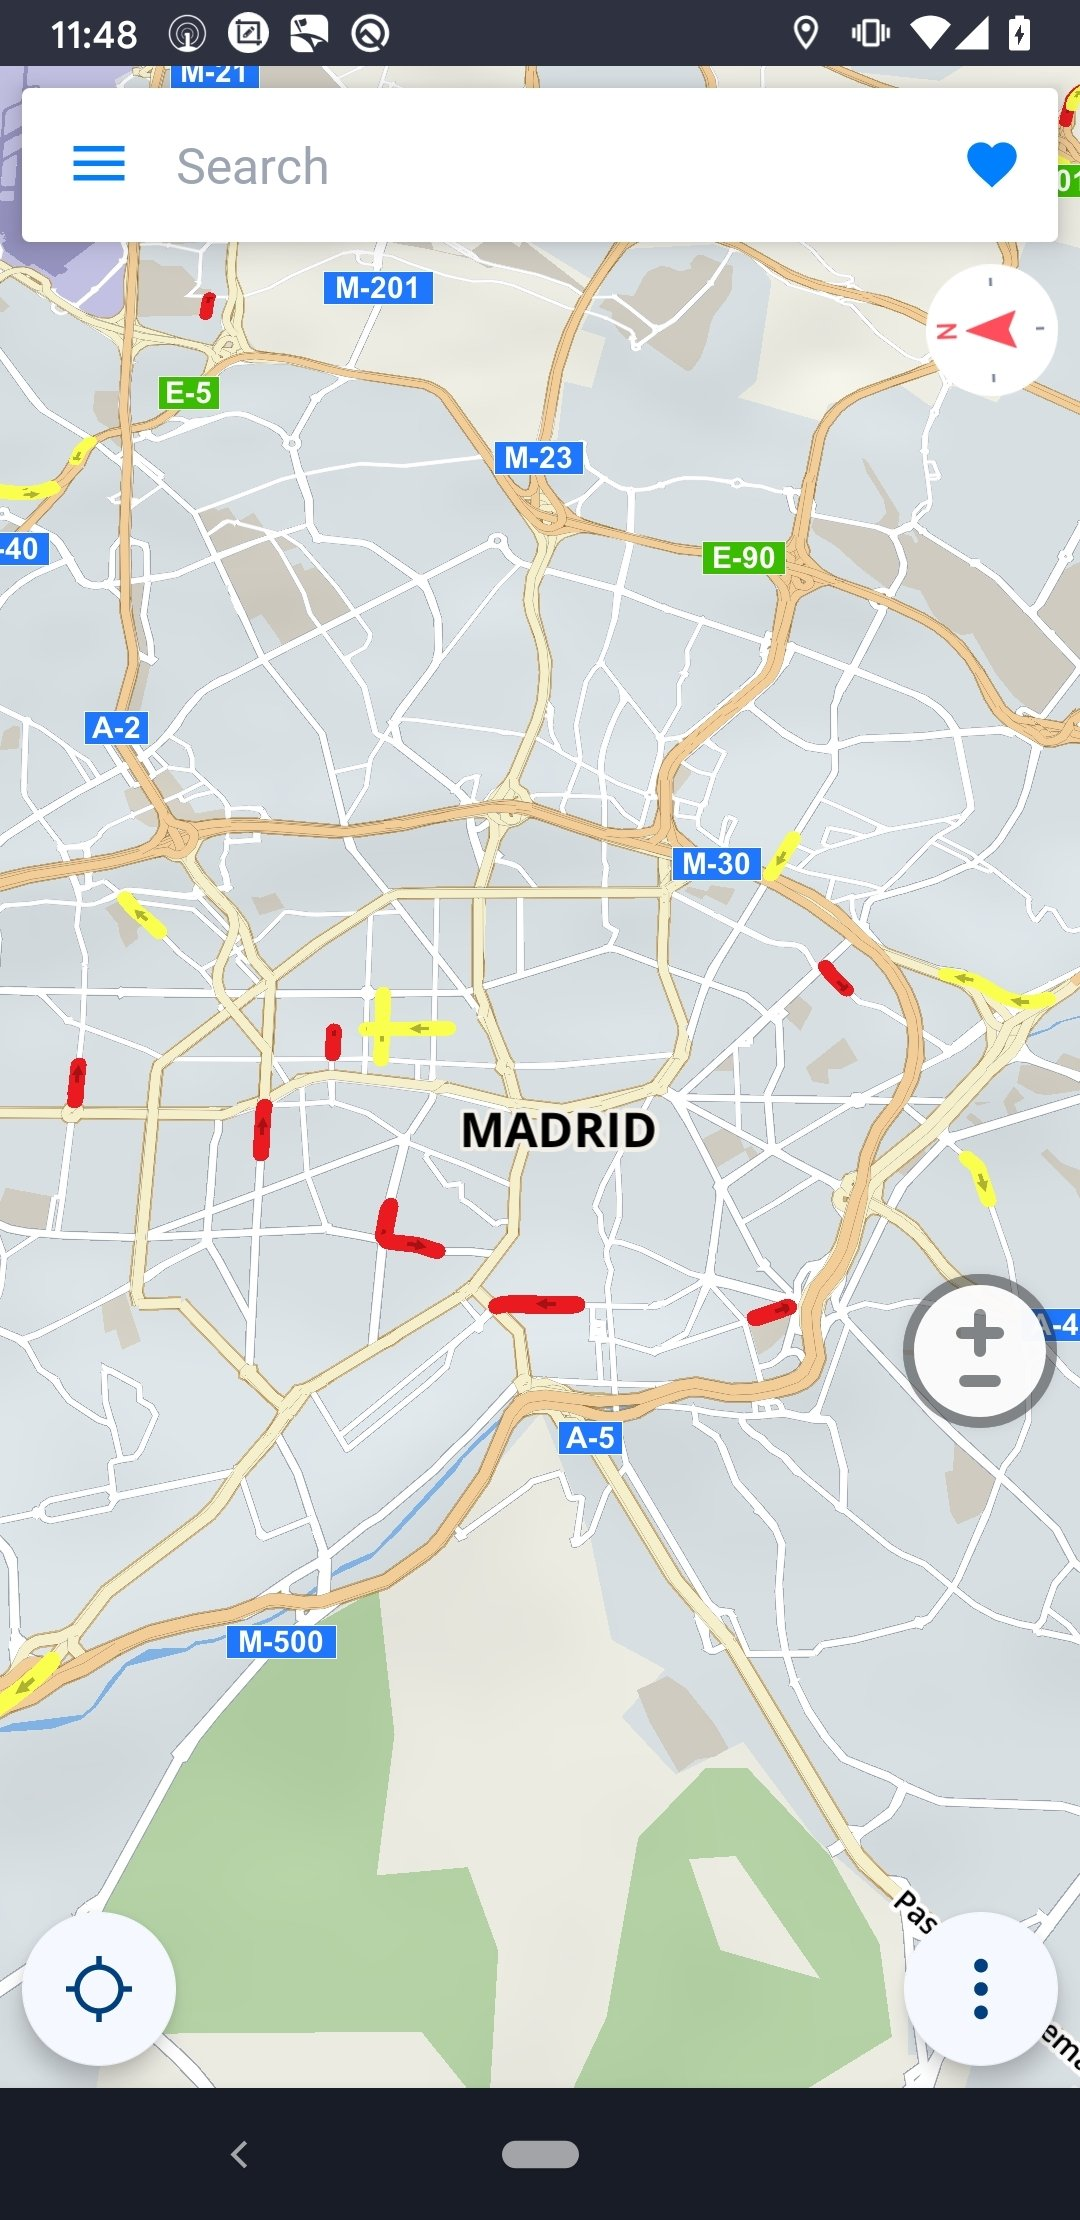 Sygic: GPS Navigation 18.2.4 - Download for Android APK Free